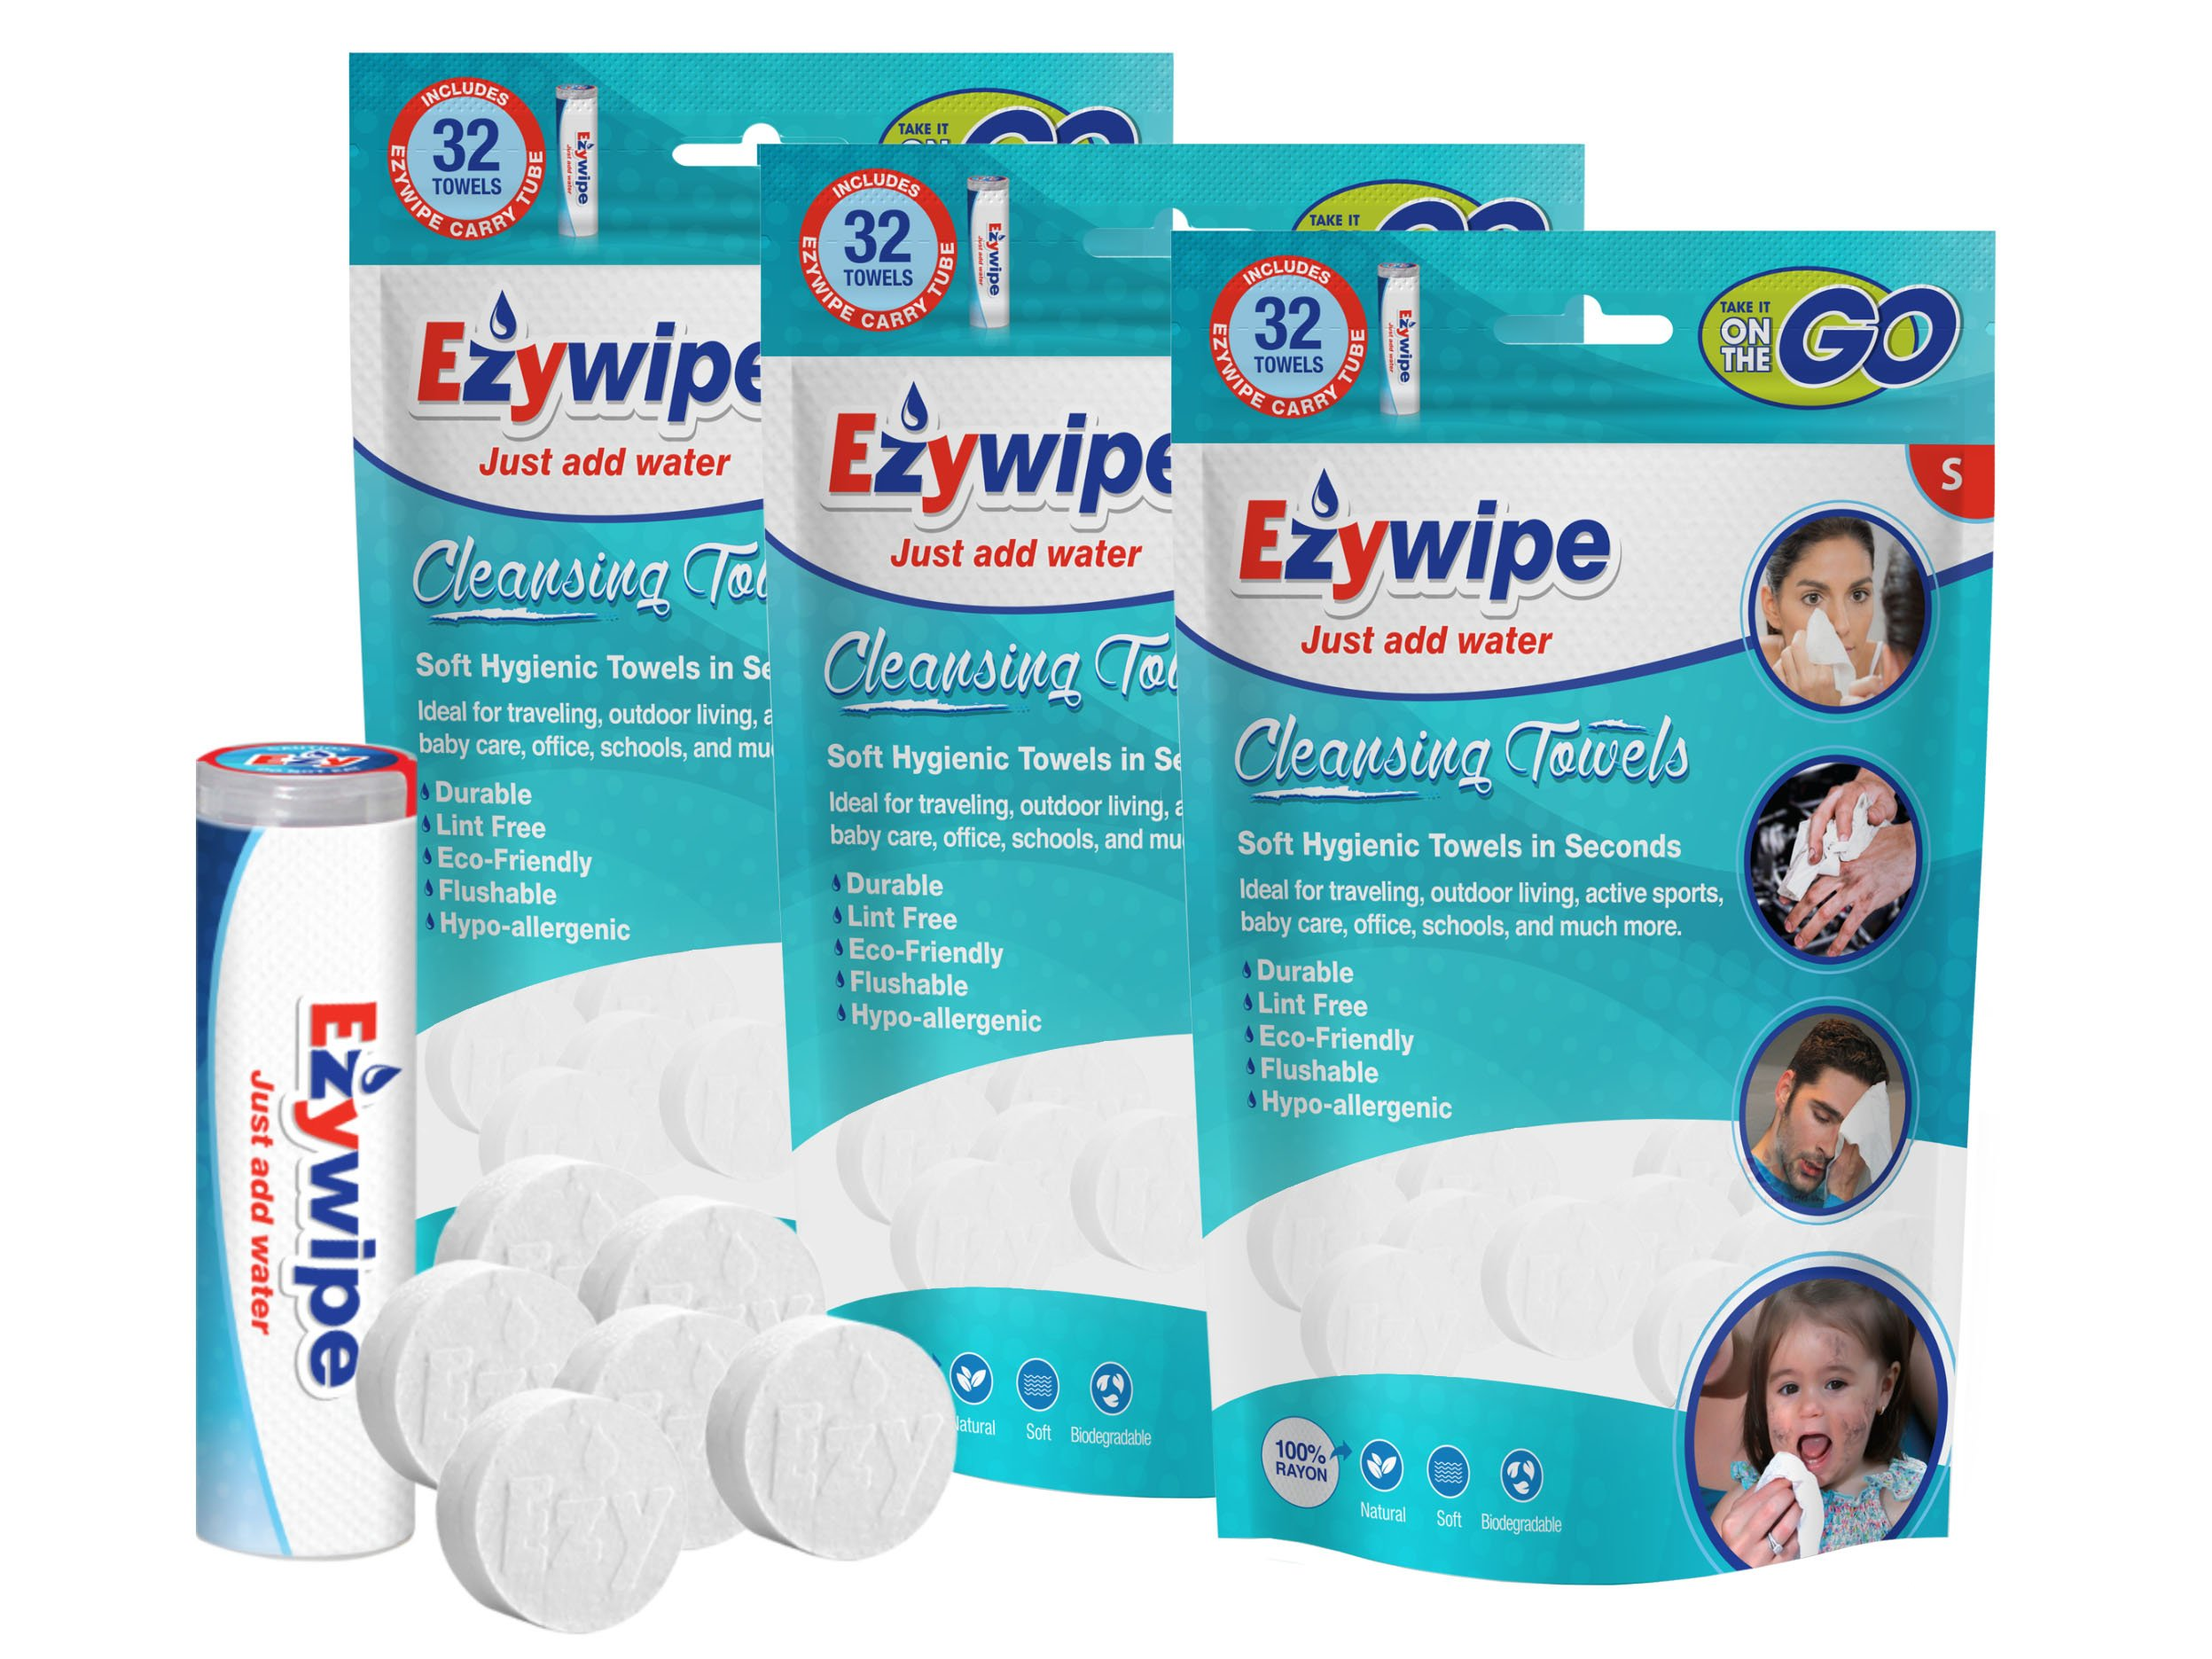 Ezywipe Compressed Cleansing Towels 3 Packs of 32 Small 100% Rayon Certified Bio-degradable Hypo-allergenic Anti-Microbial Anti-Bacterial for Travel Camping Home Family Pet Baby Seniors Personal Care